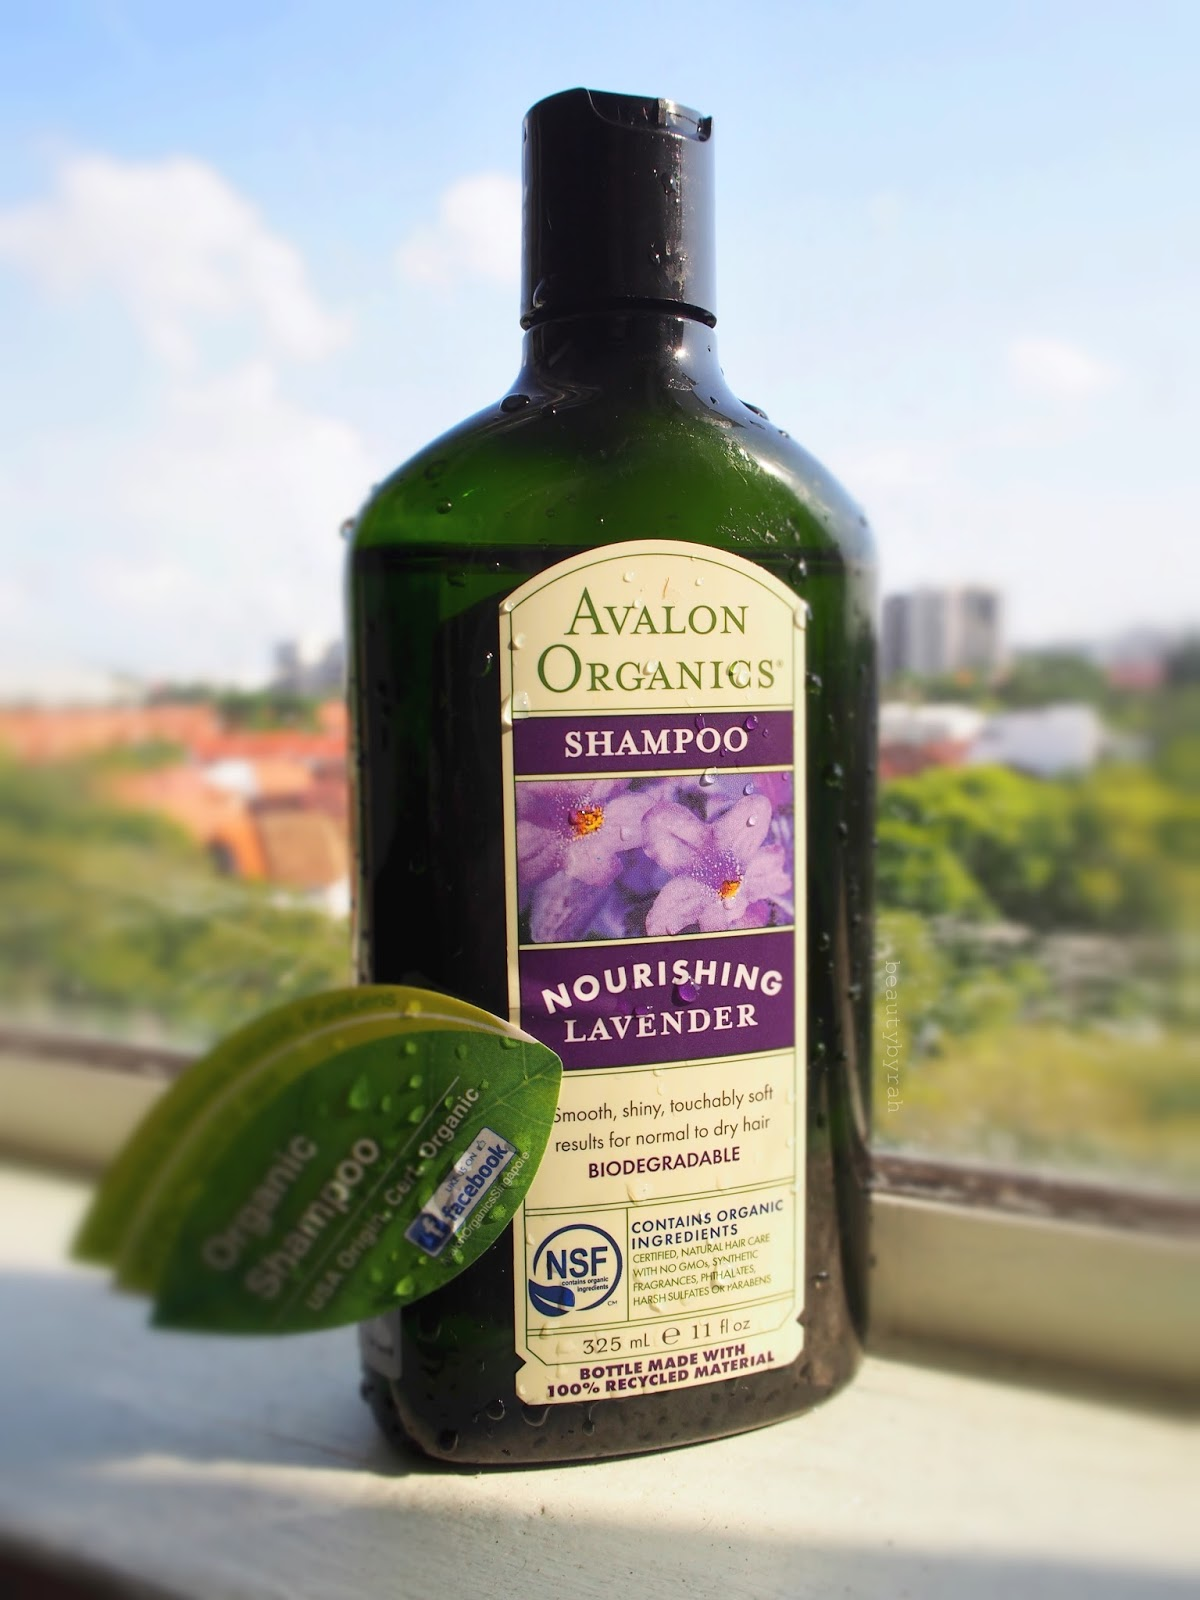 Avalon Organics Lavender Shampoo and Conditioner Review